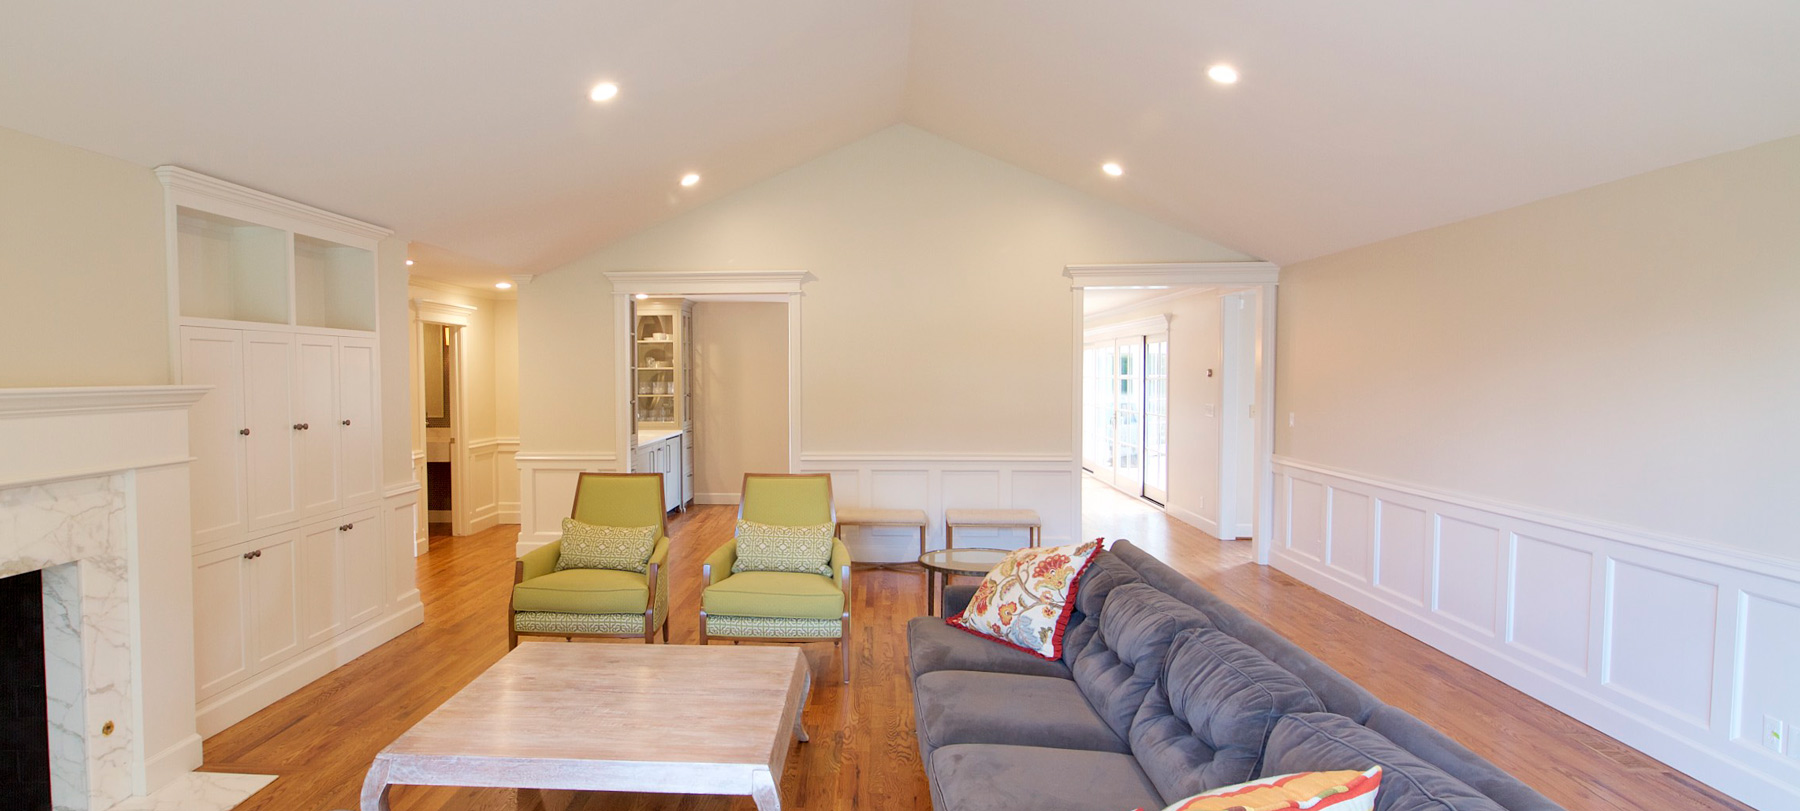 Midtown Tulsa Home Remodel | Living Room | Home Innovations